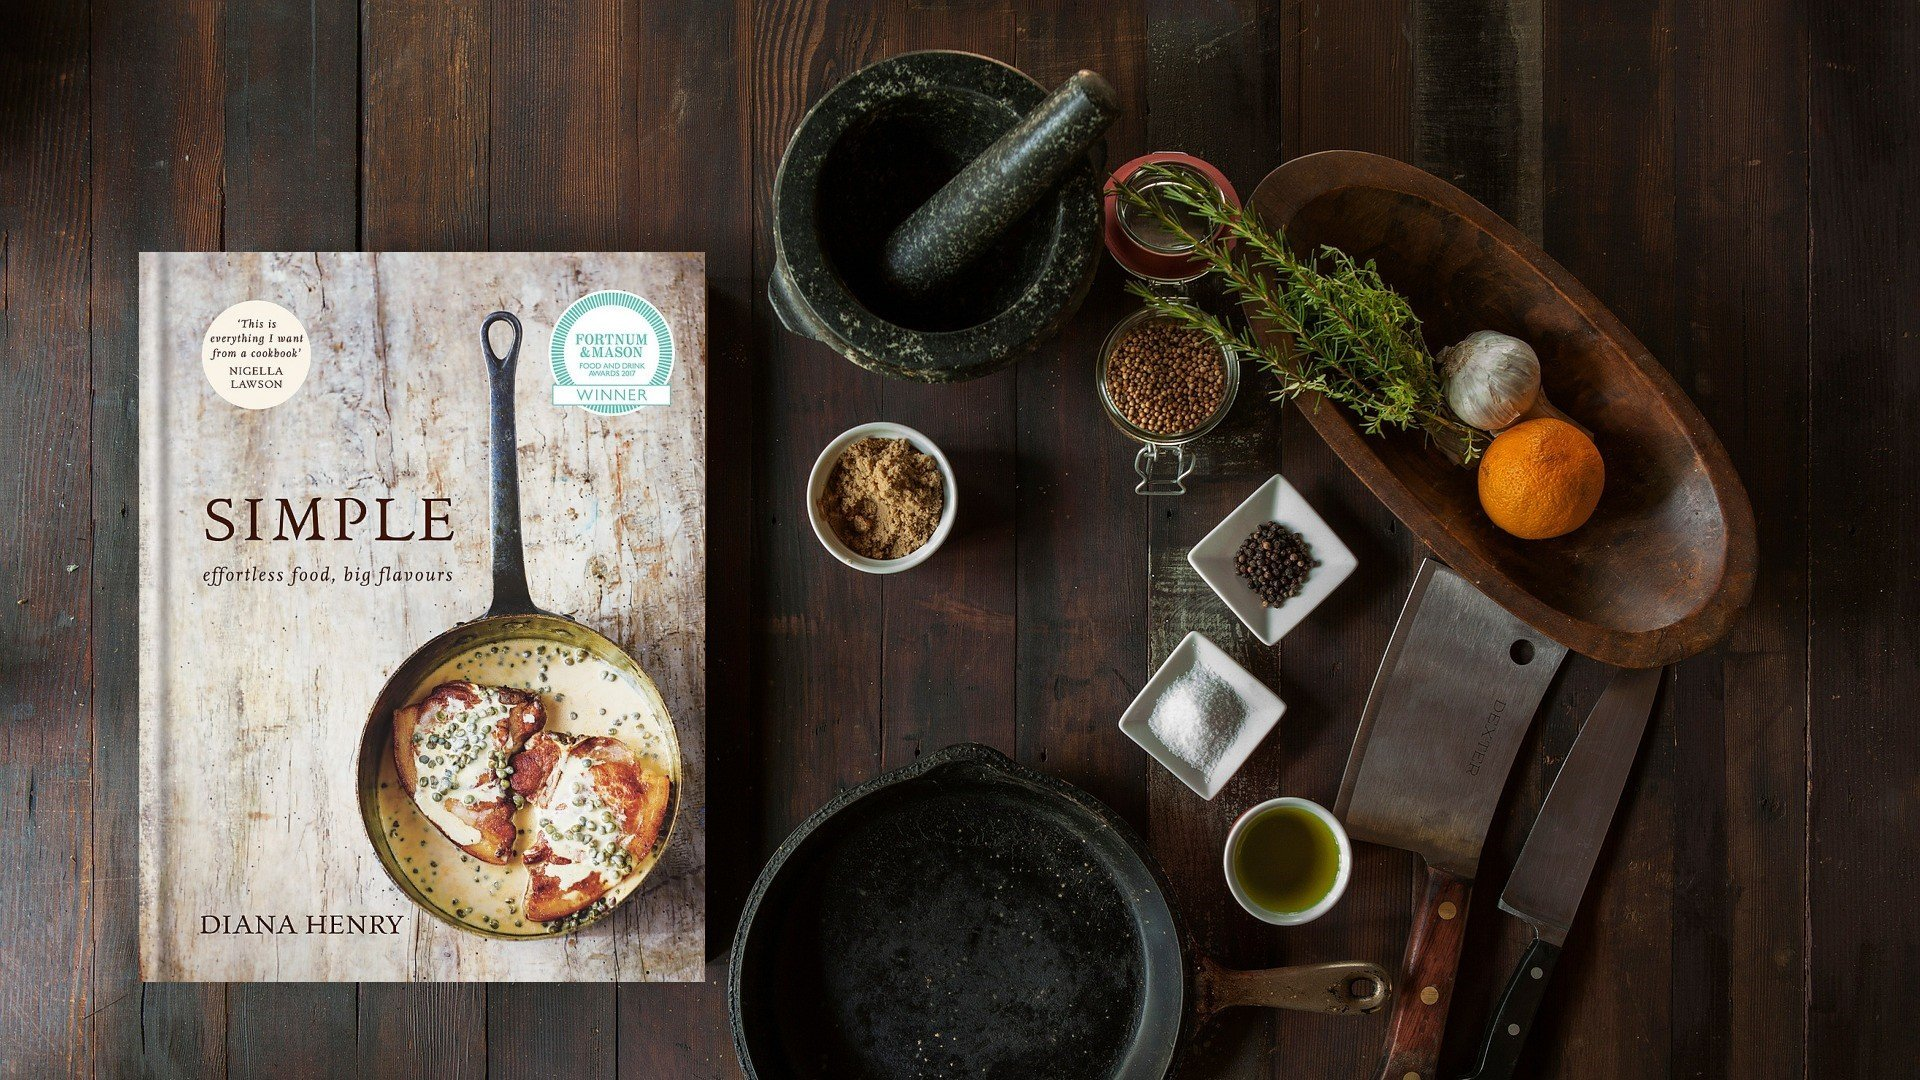 SIMPLE Effortless Food Big Flavours - A Cookbook by Diana Henry